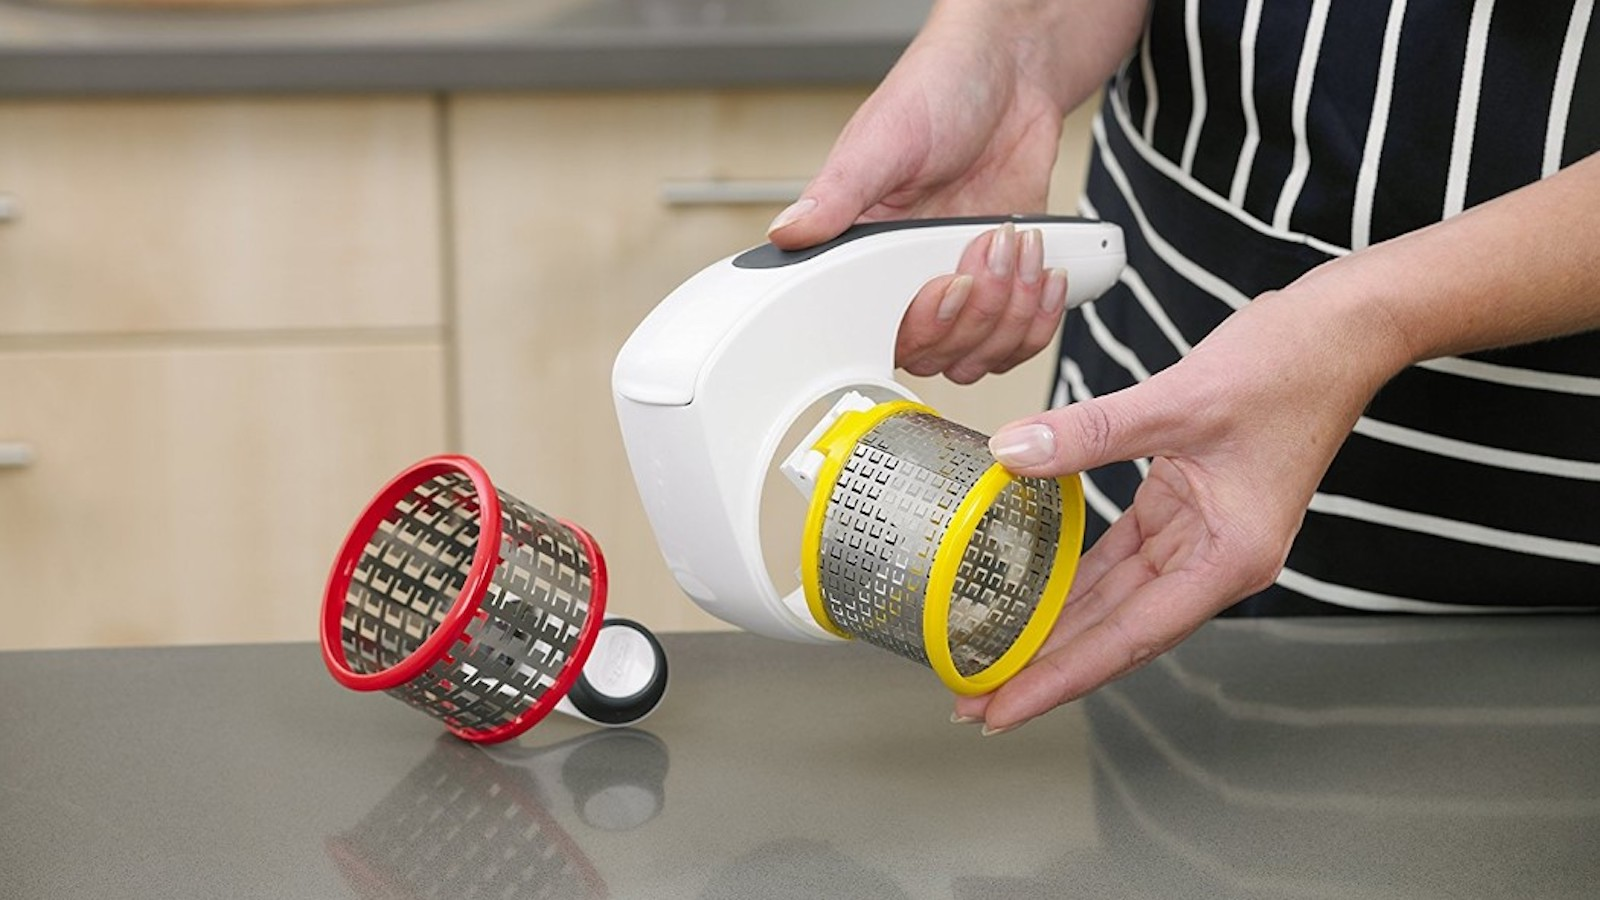 Zyliss Classic Rotary Cheese Grater food slicer